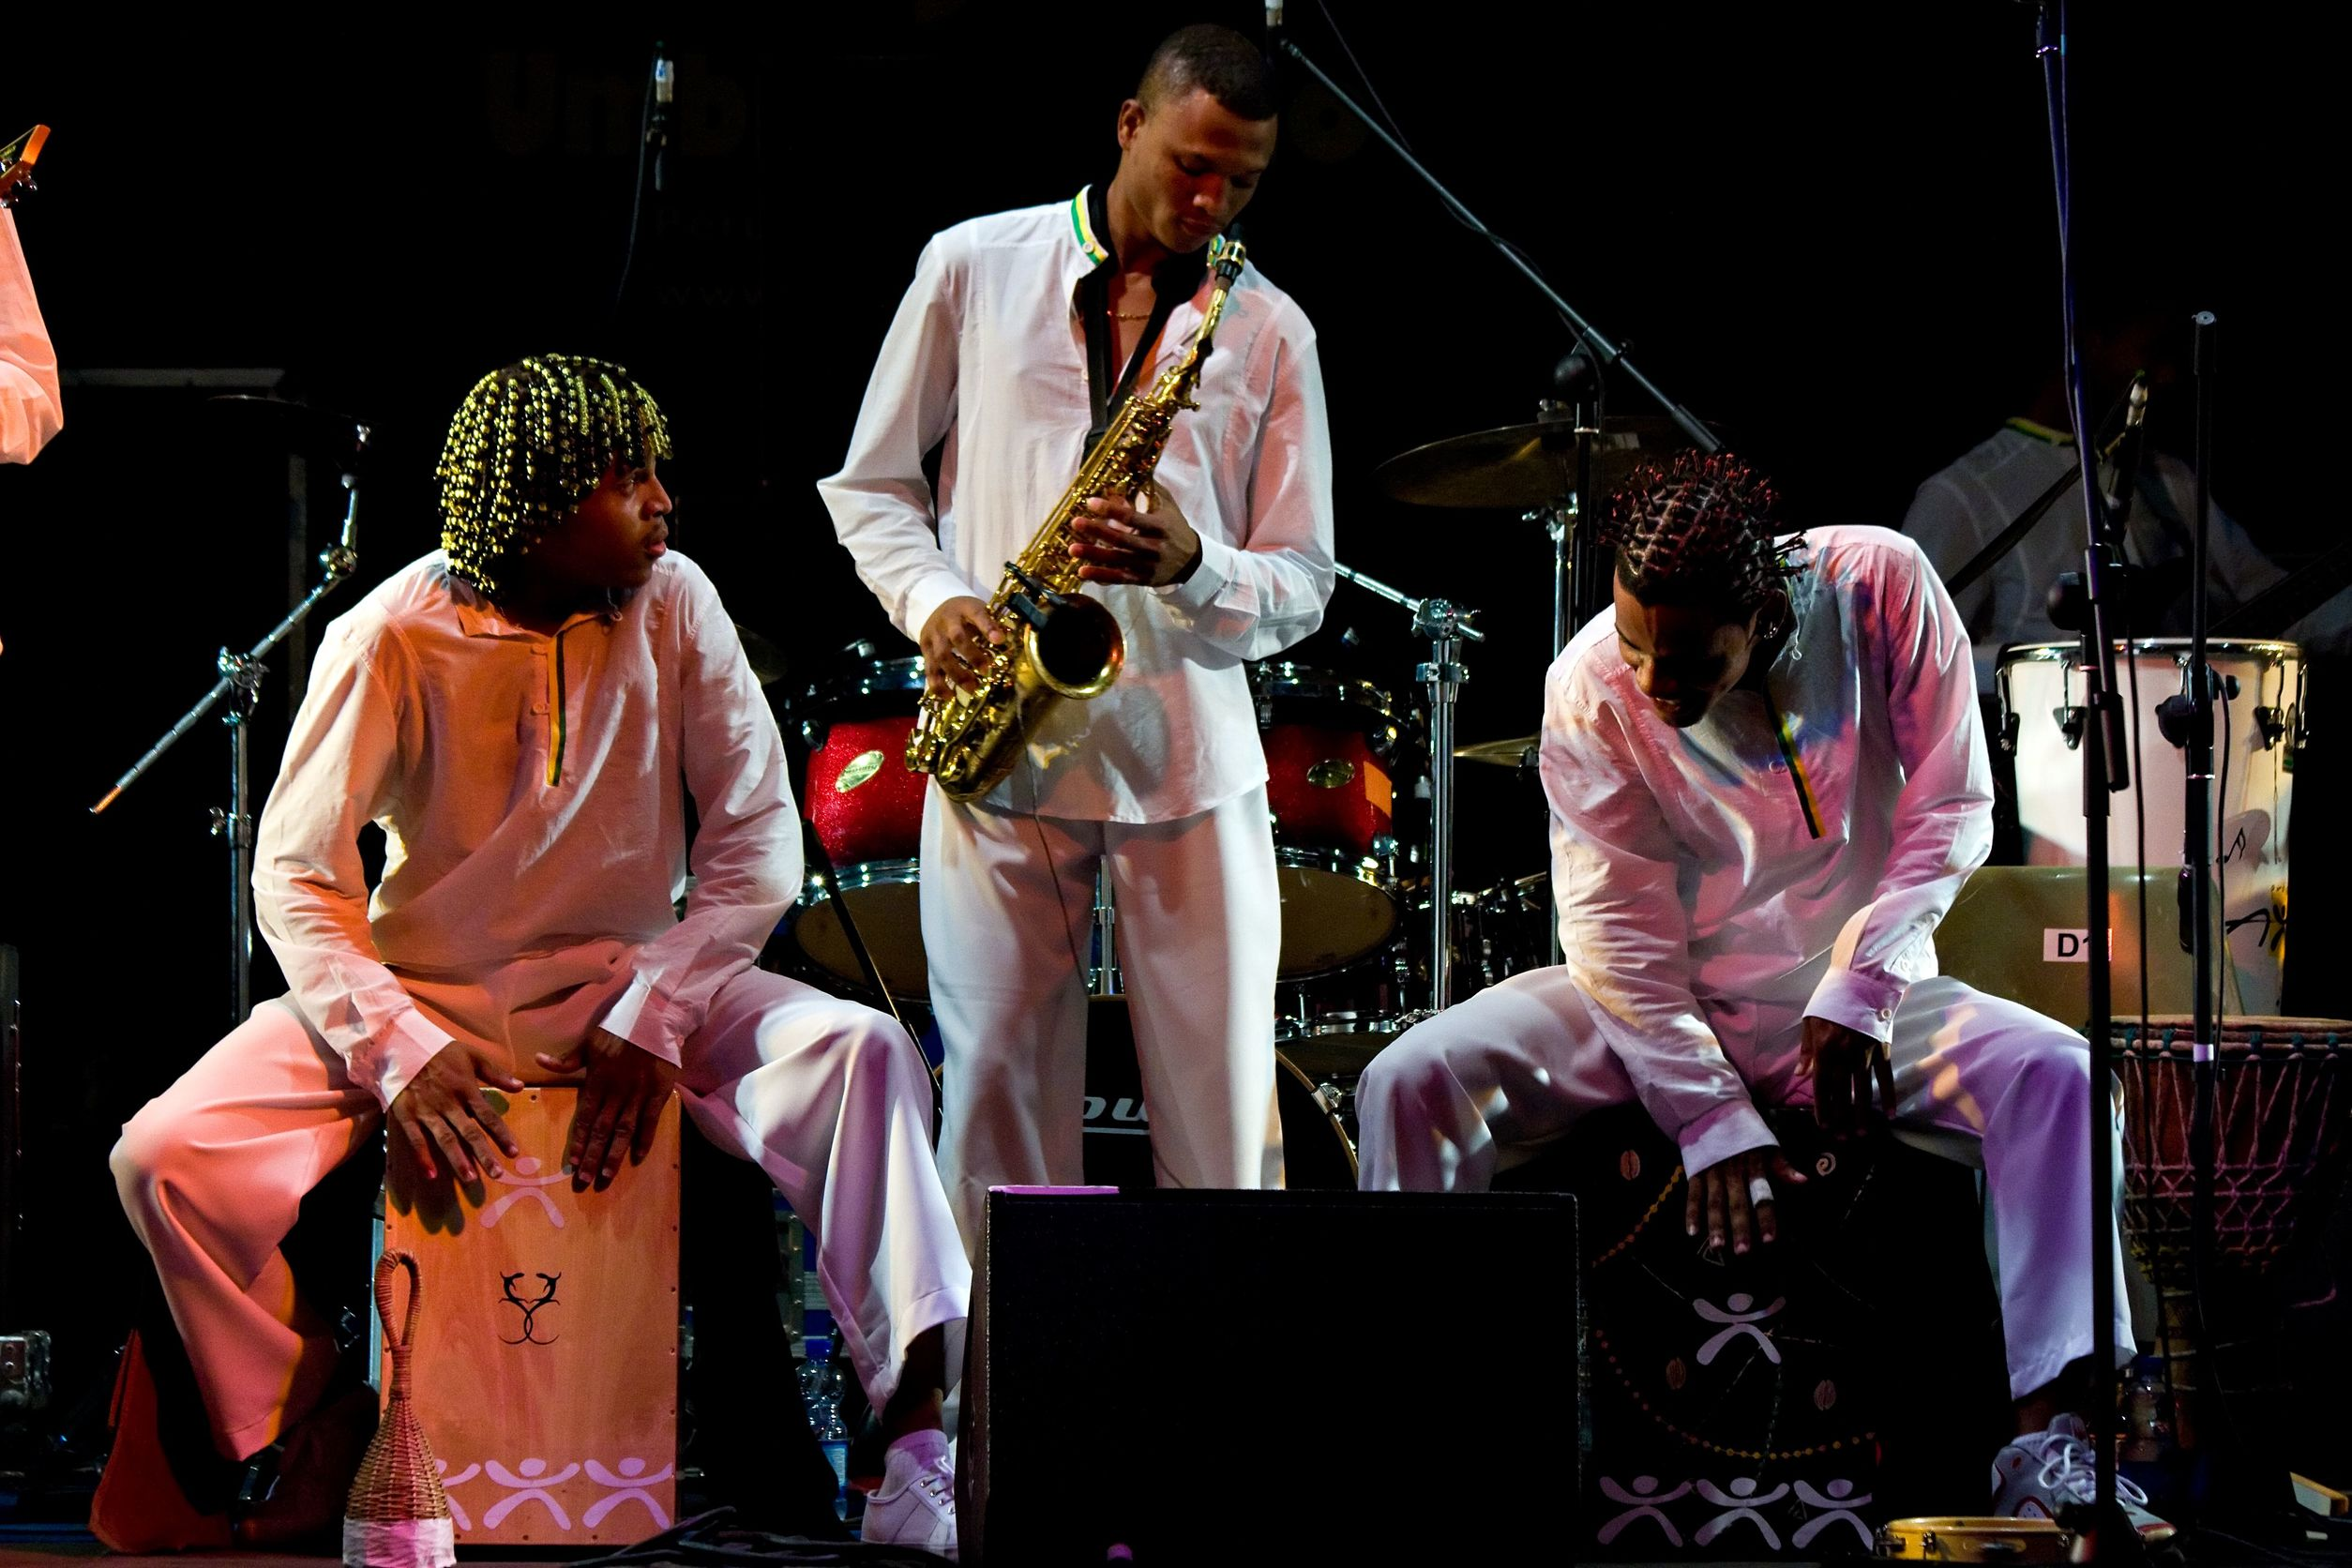 Umbria Jazz summer music Festival in Italy